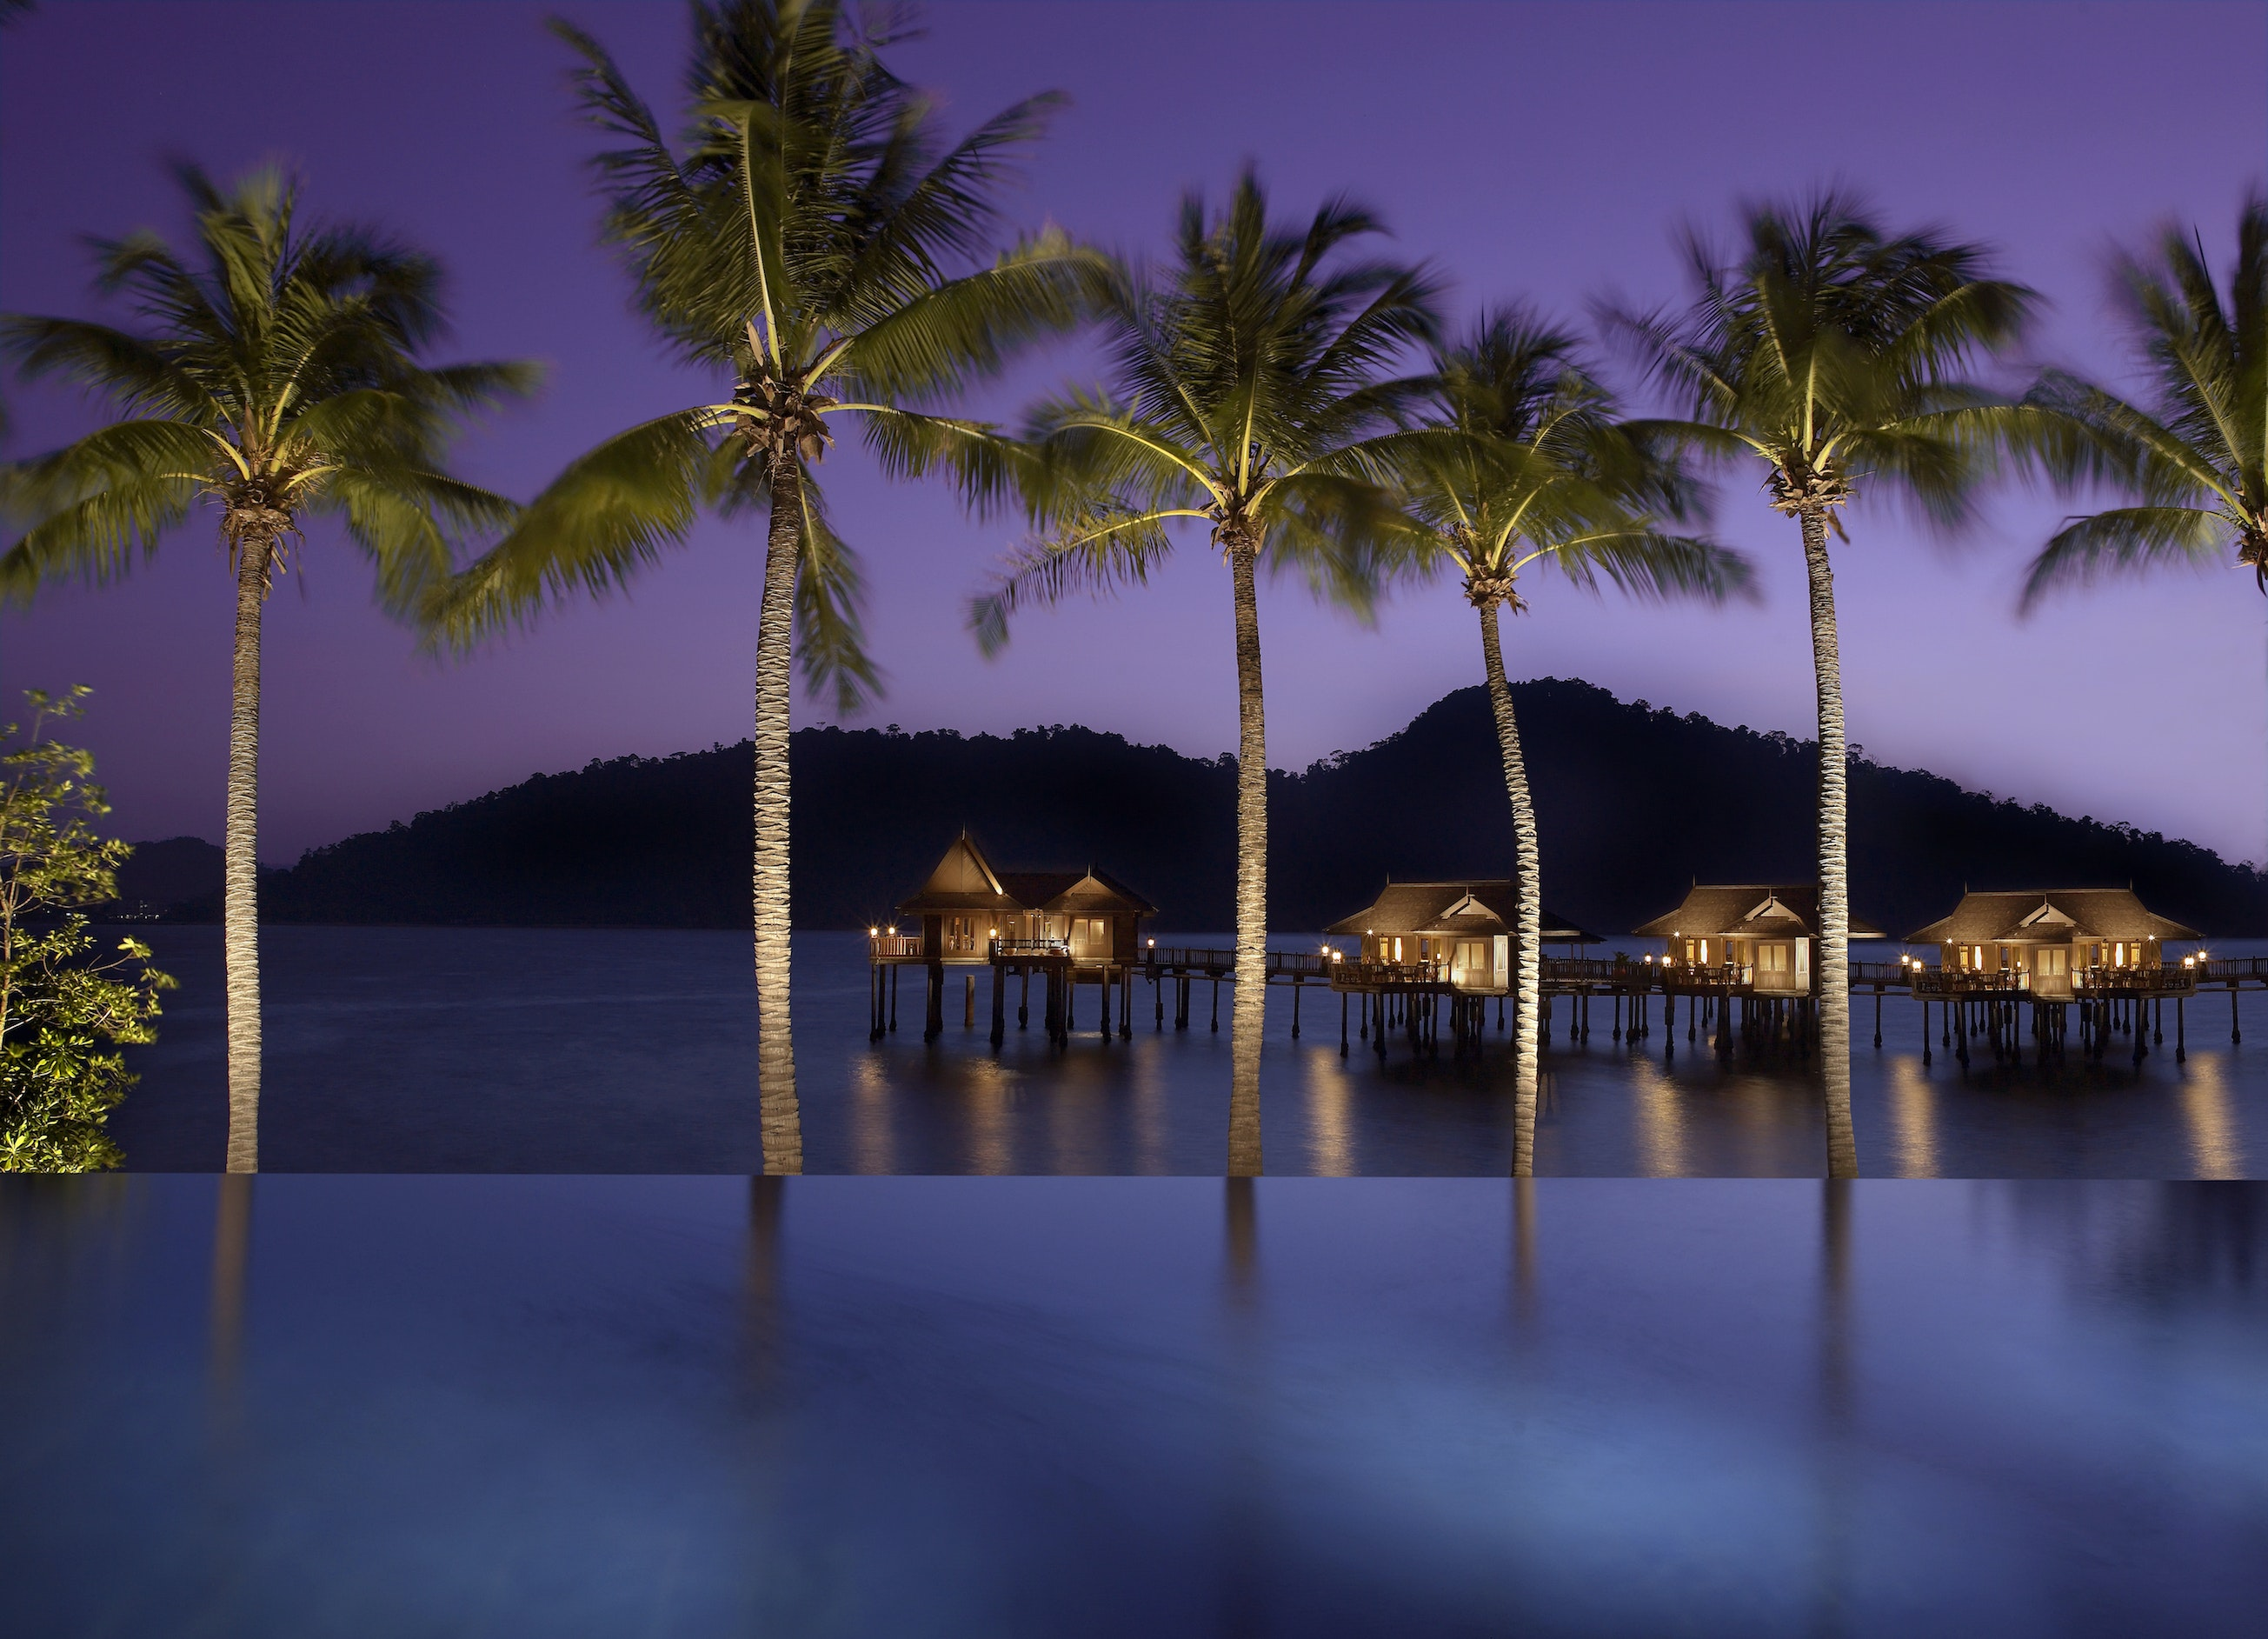 Pangkor Laut Resort in Malaysia is another SLH property participating in the Hyatt loyalty program.